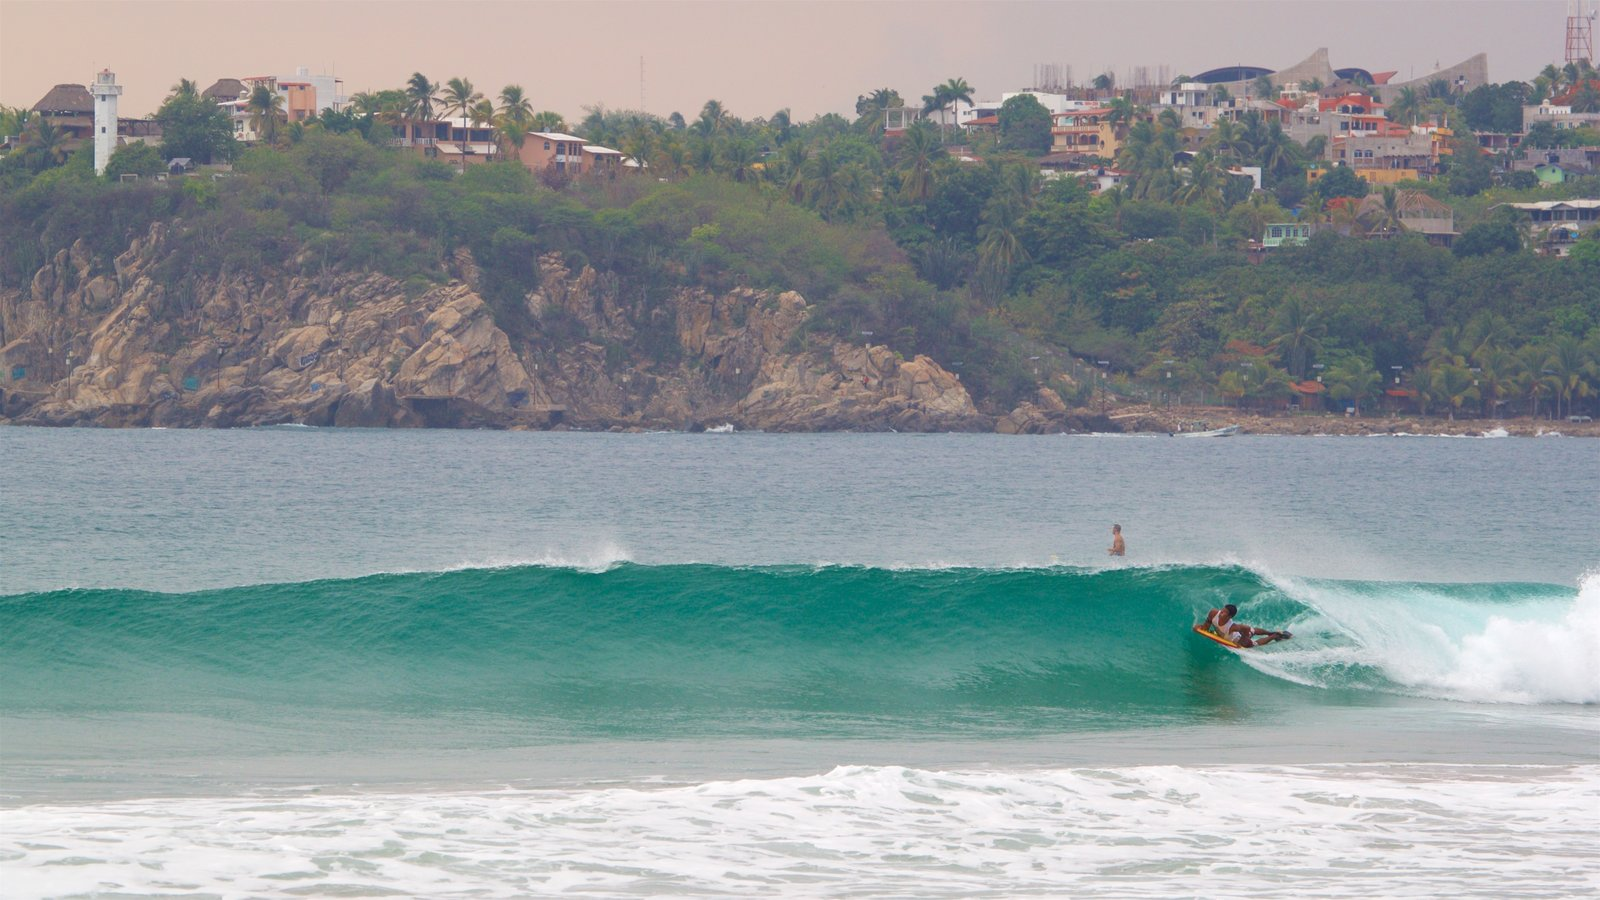 Zicatela Beach which includes waves, surfing and rocky coastline